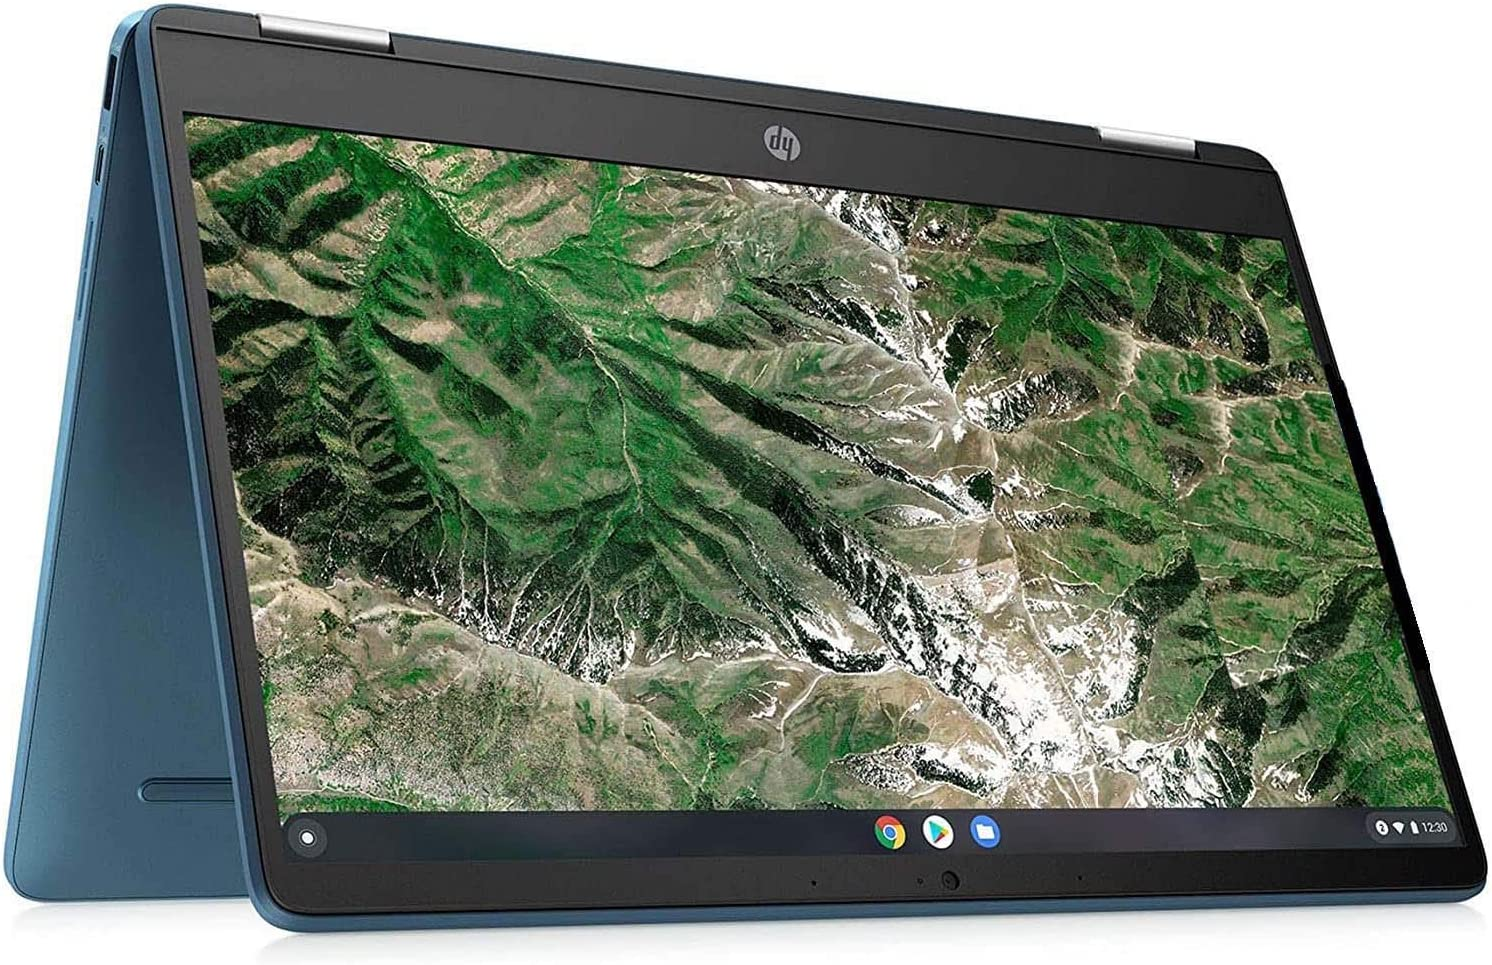 HP Chromebook x360 Laptop Computer in Teal Color Intel Celeron N4020 up to 2.8GHz 4GB DDR4 RAM 64GB eMMC 14inch HD 2-in-1 Touchscreen (Renewed)